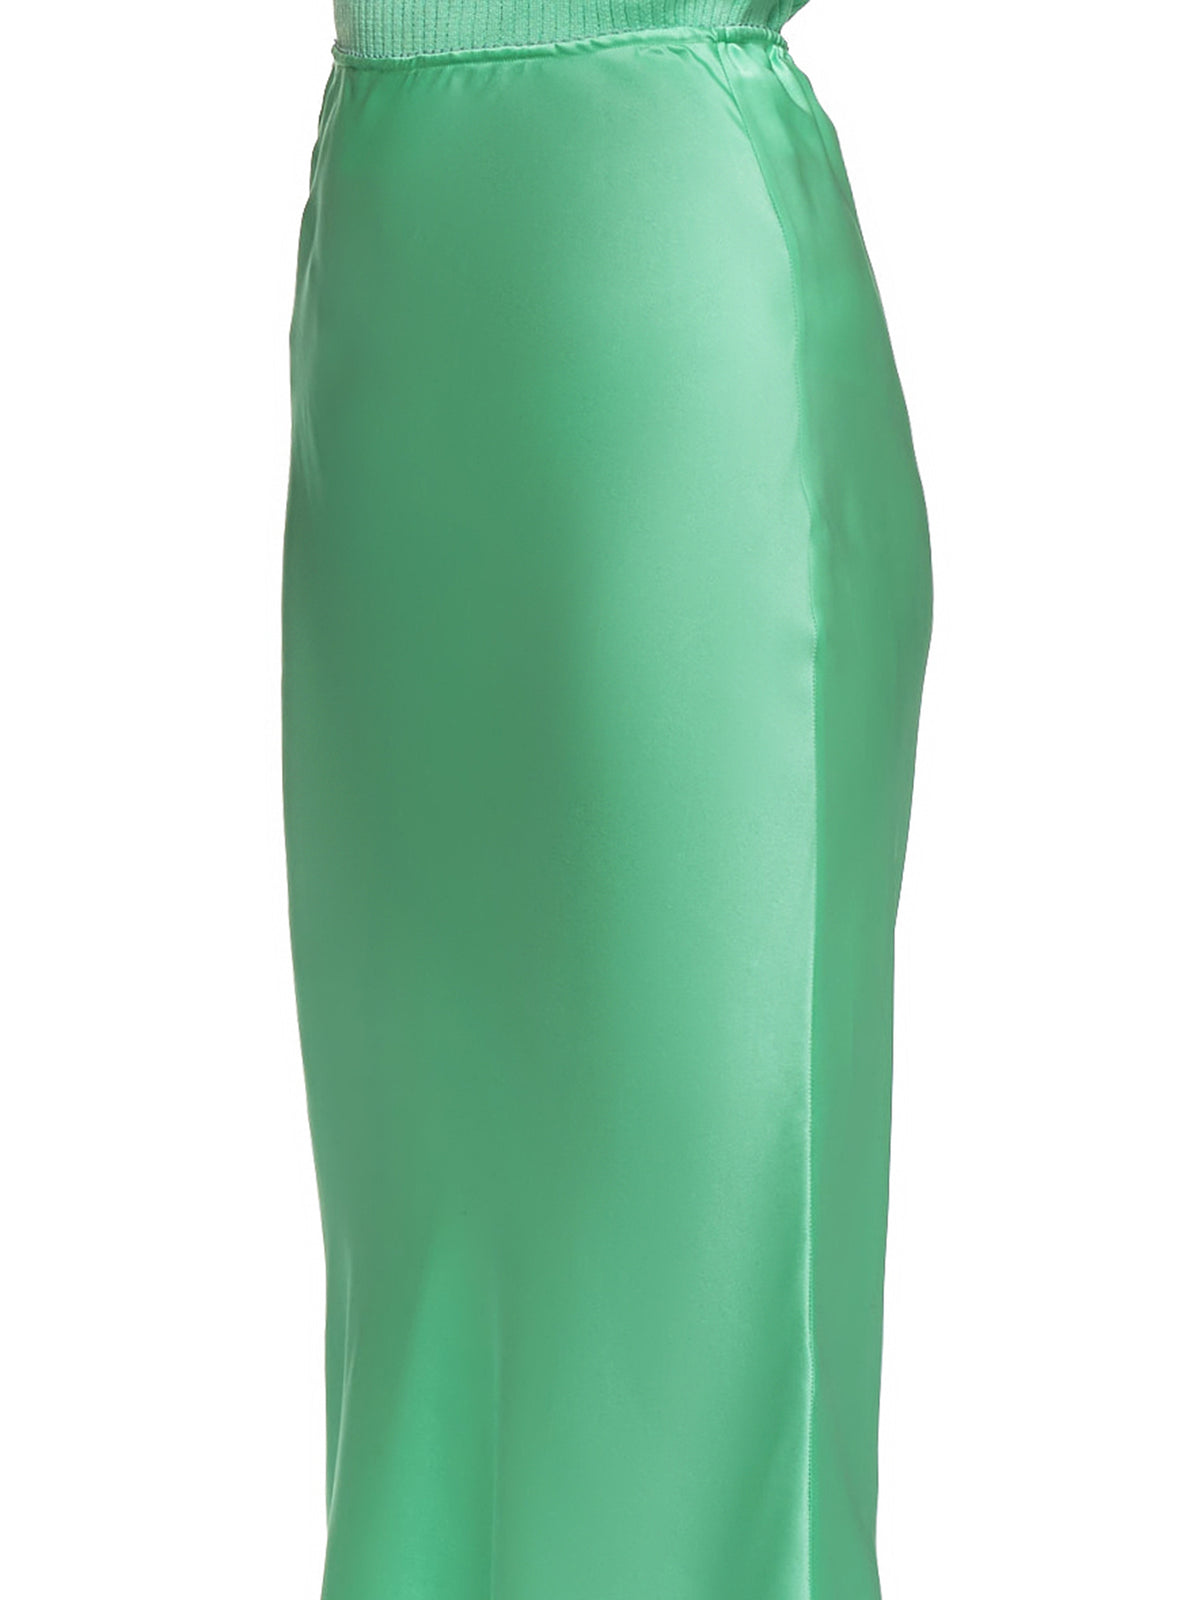 Satin Skirt (#002015-#005-MINT)